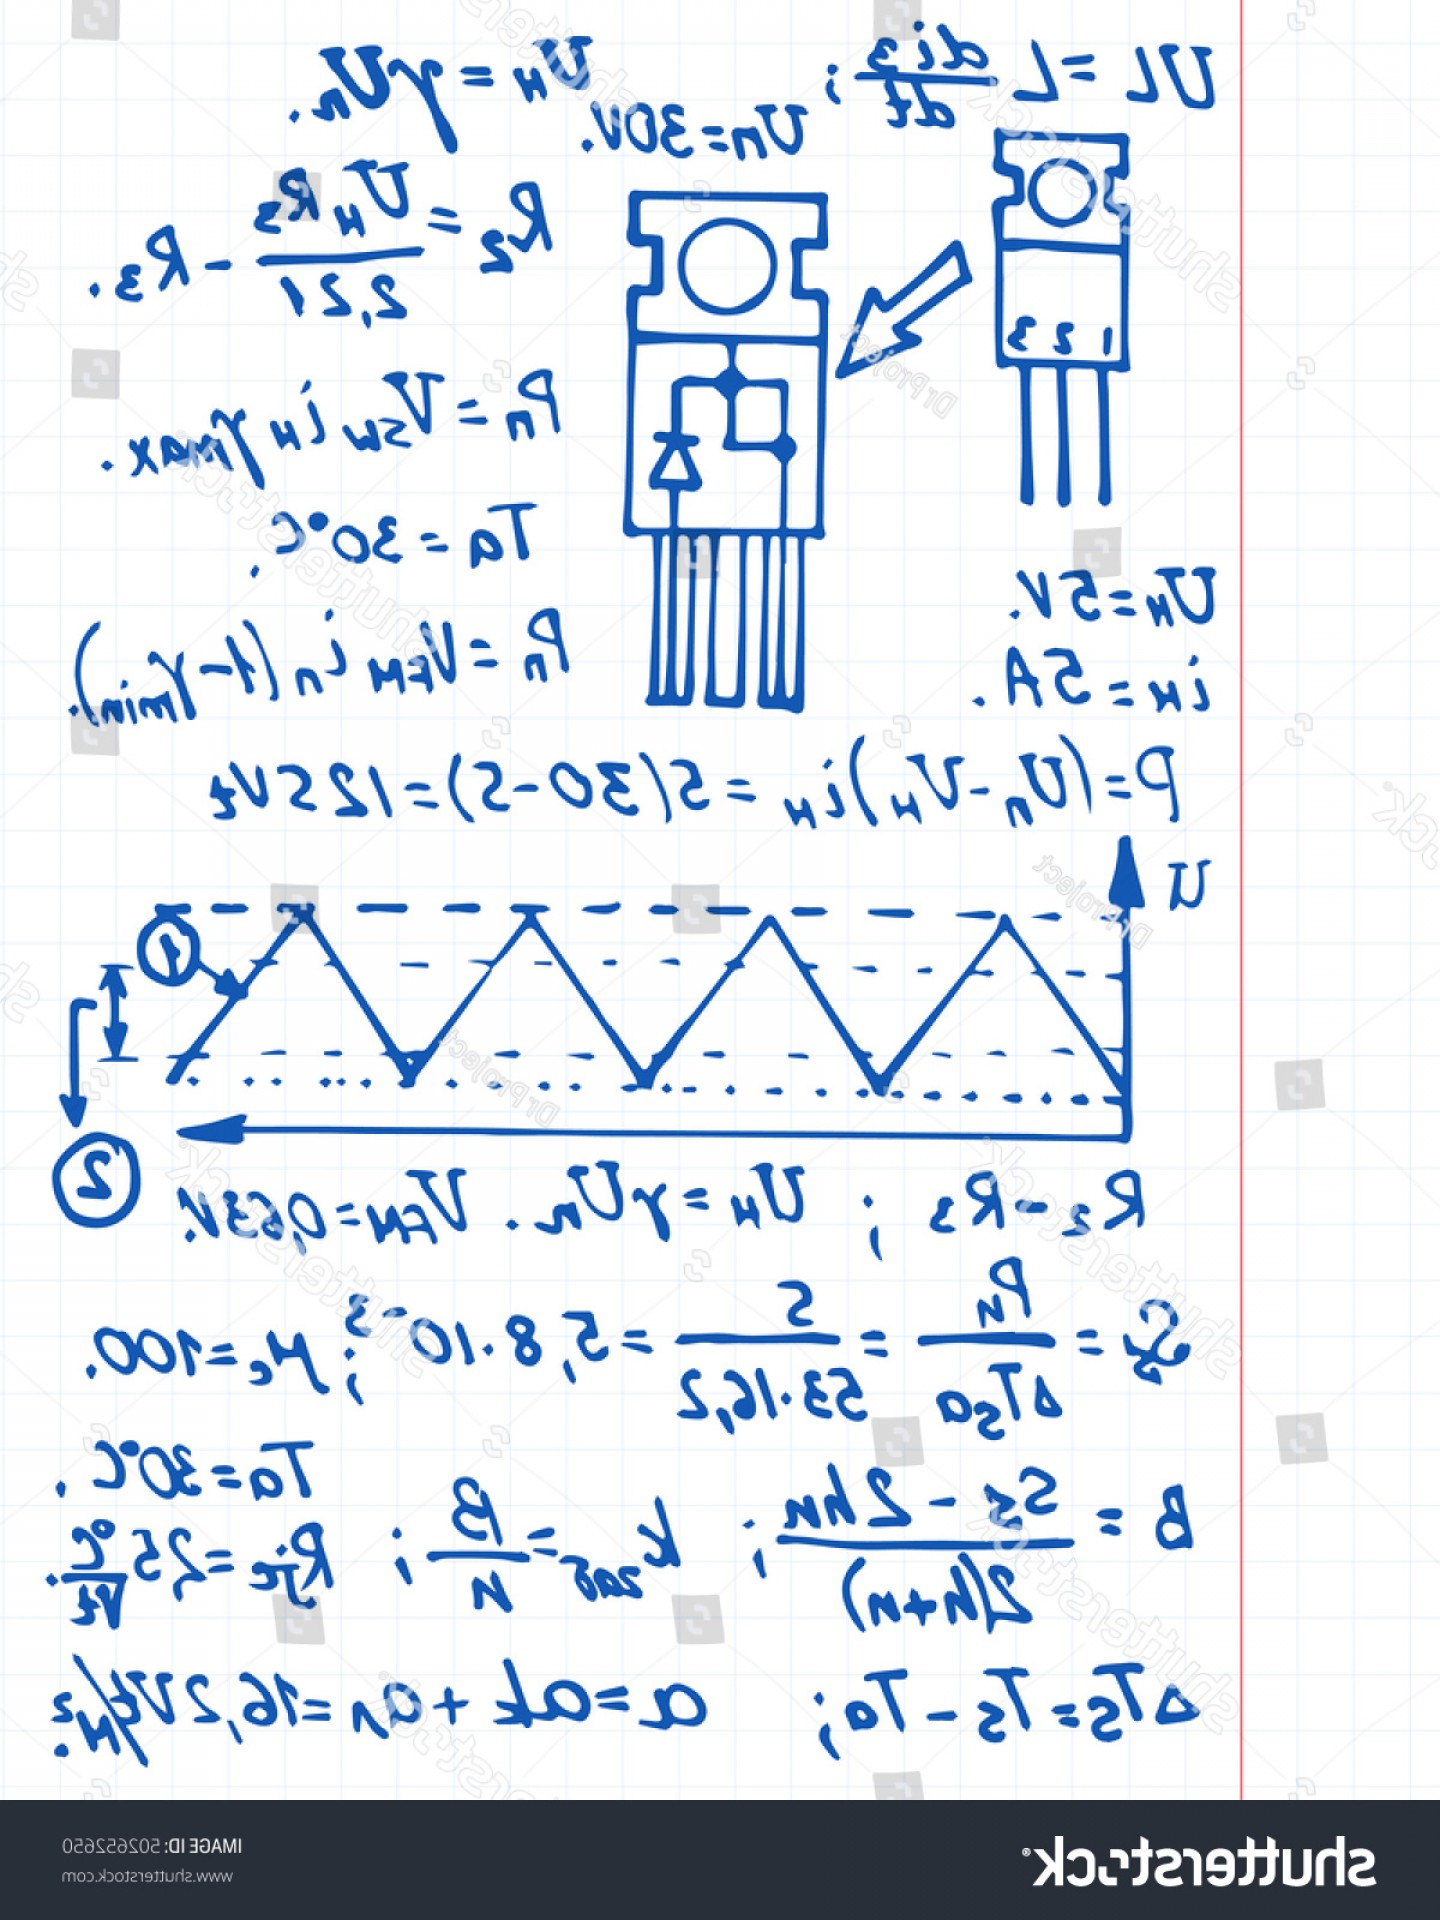 RE MAX Vector: Electronic Engineering Physics Mathematics Equation Calculations